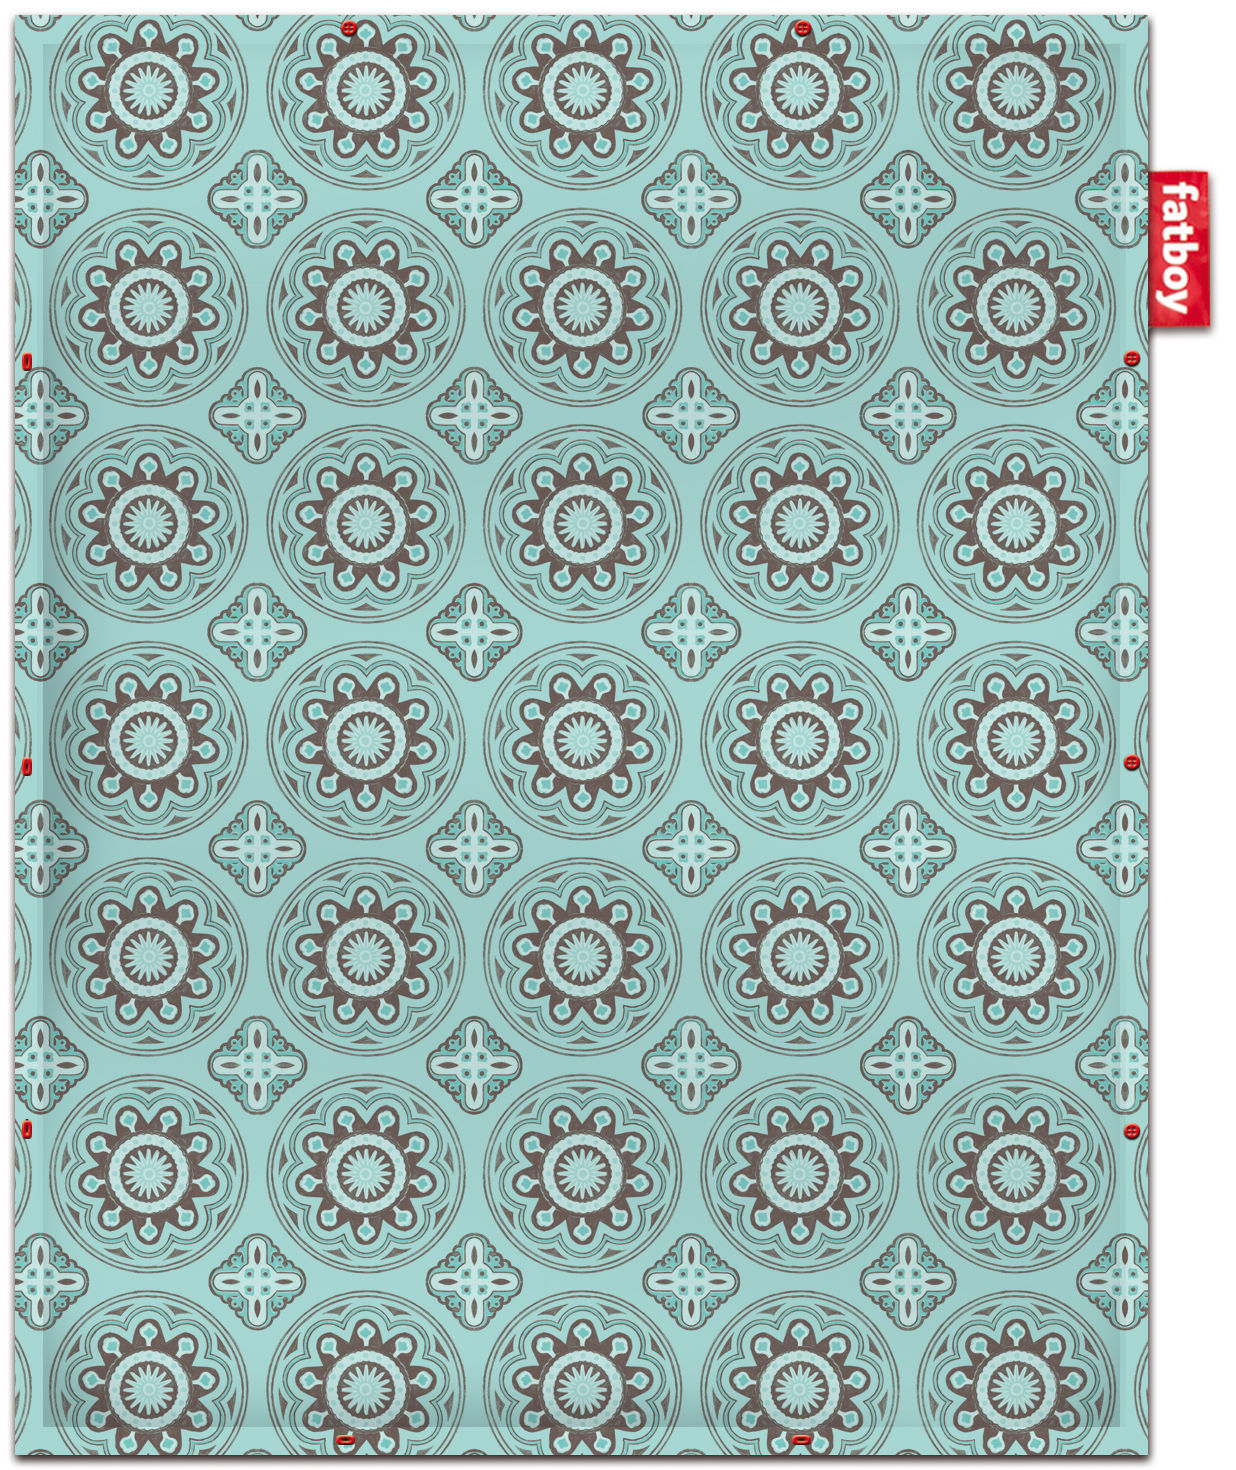 Flying carpet outdoor outdoor rug turquoise casablanca by for Tapis exterieur 8x10